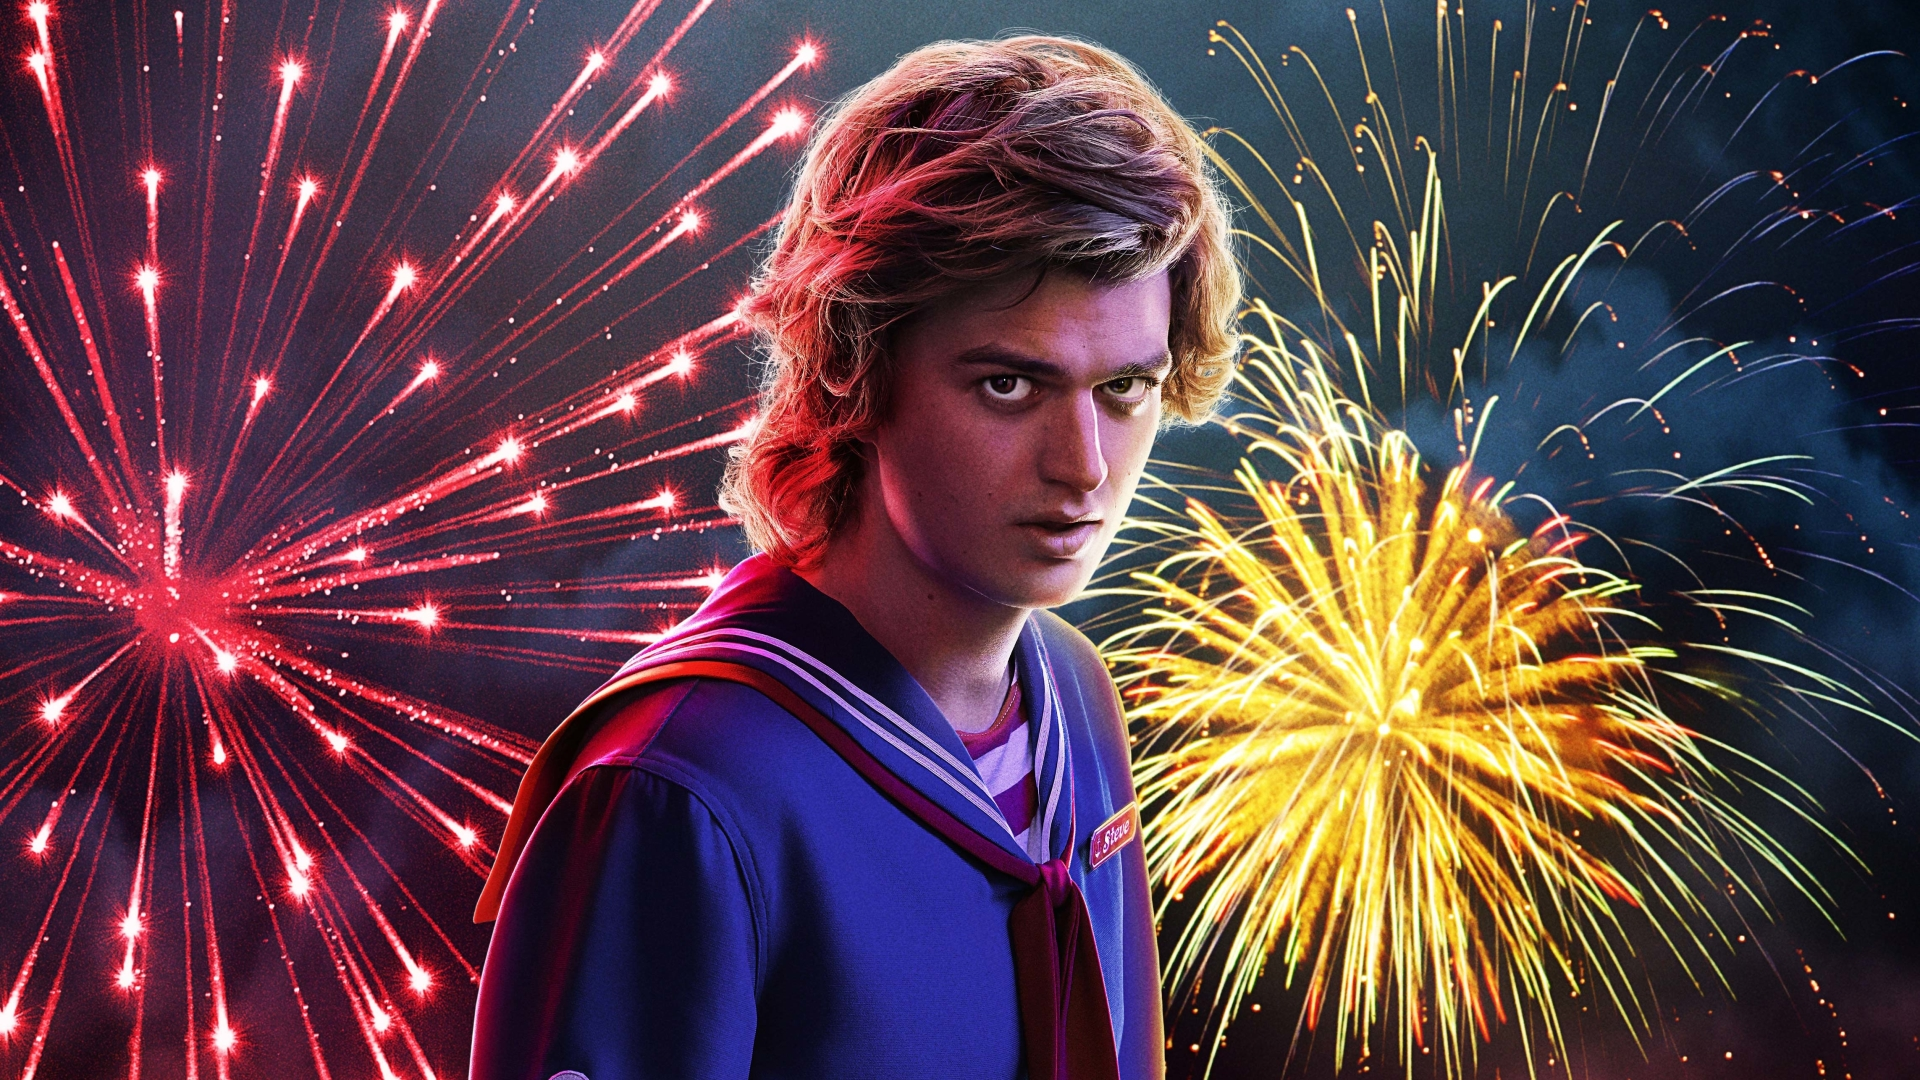 1920x1080 Joe Keery Stranger Things 3 1080p Laptop Full Hd